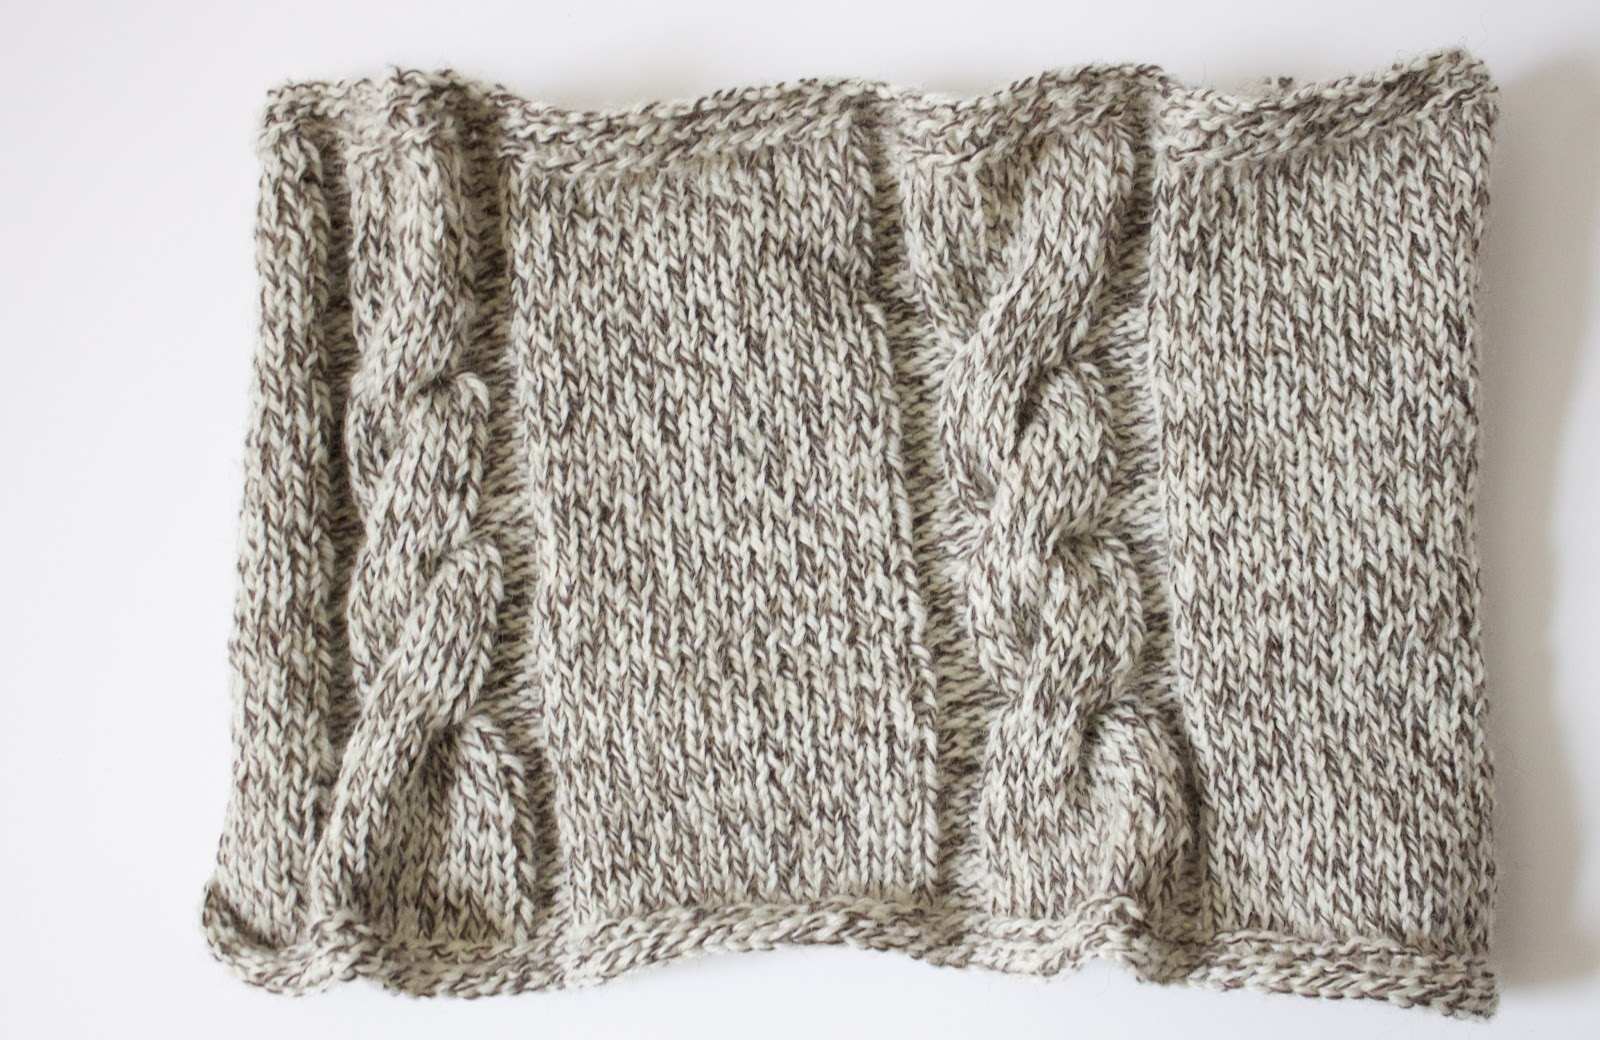 Handmade by Meg K: Cabled Cowl Knitting Pattern